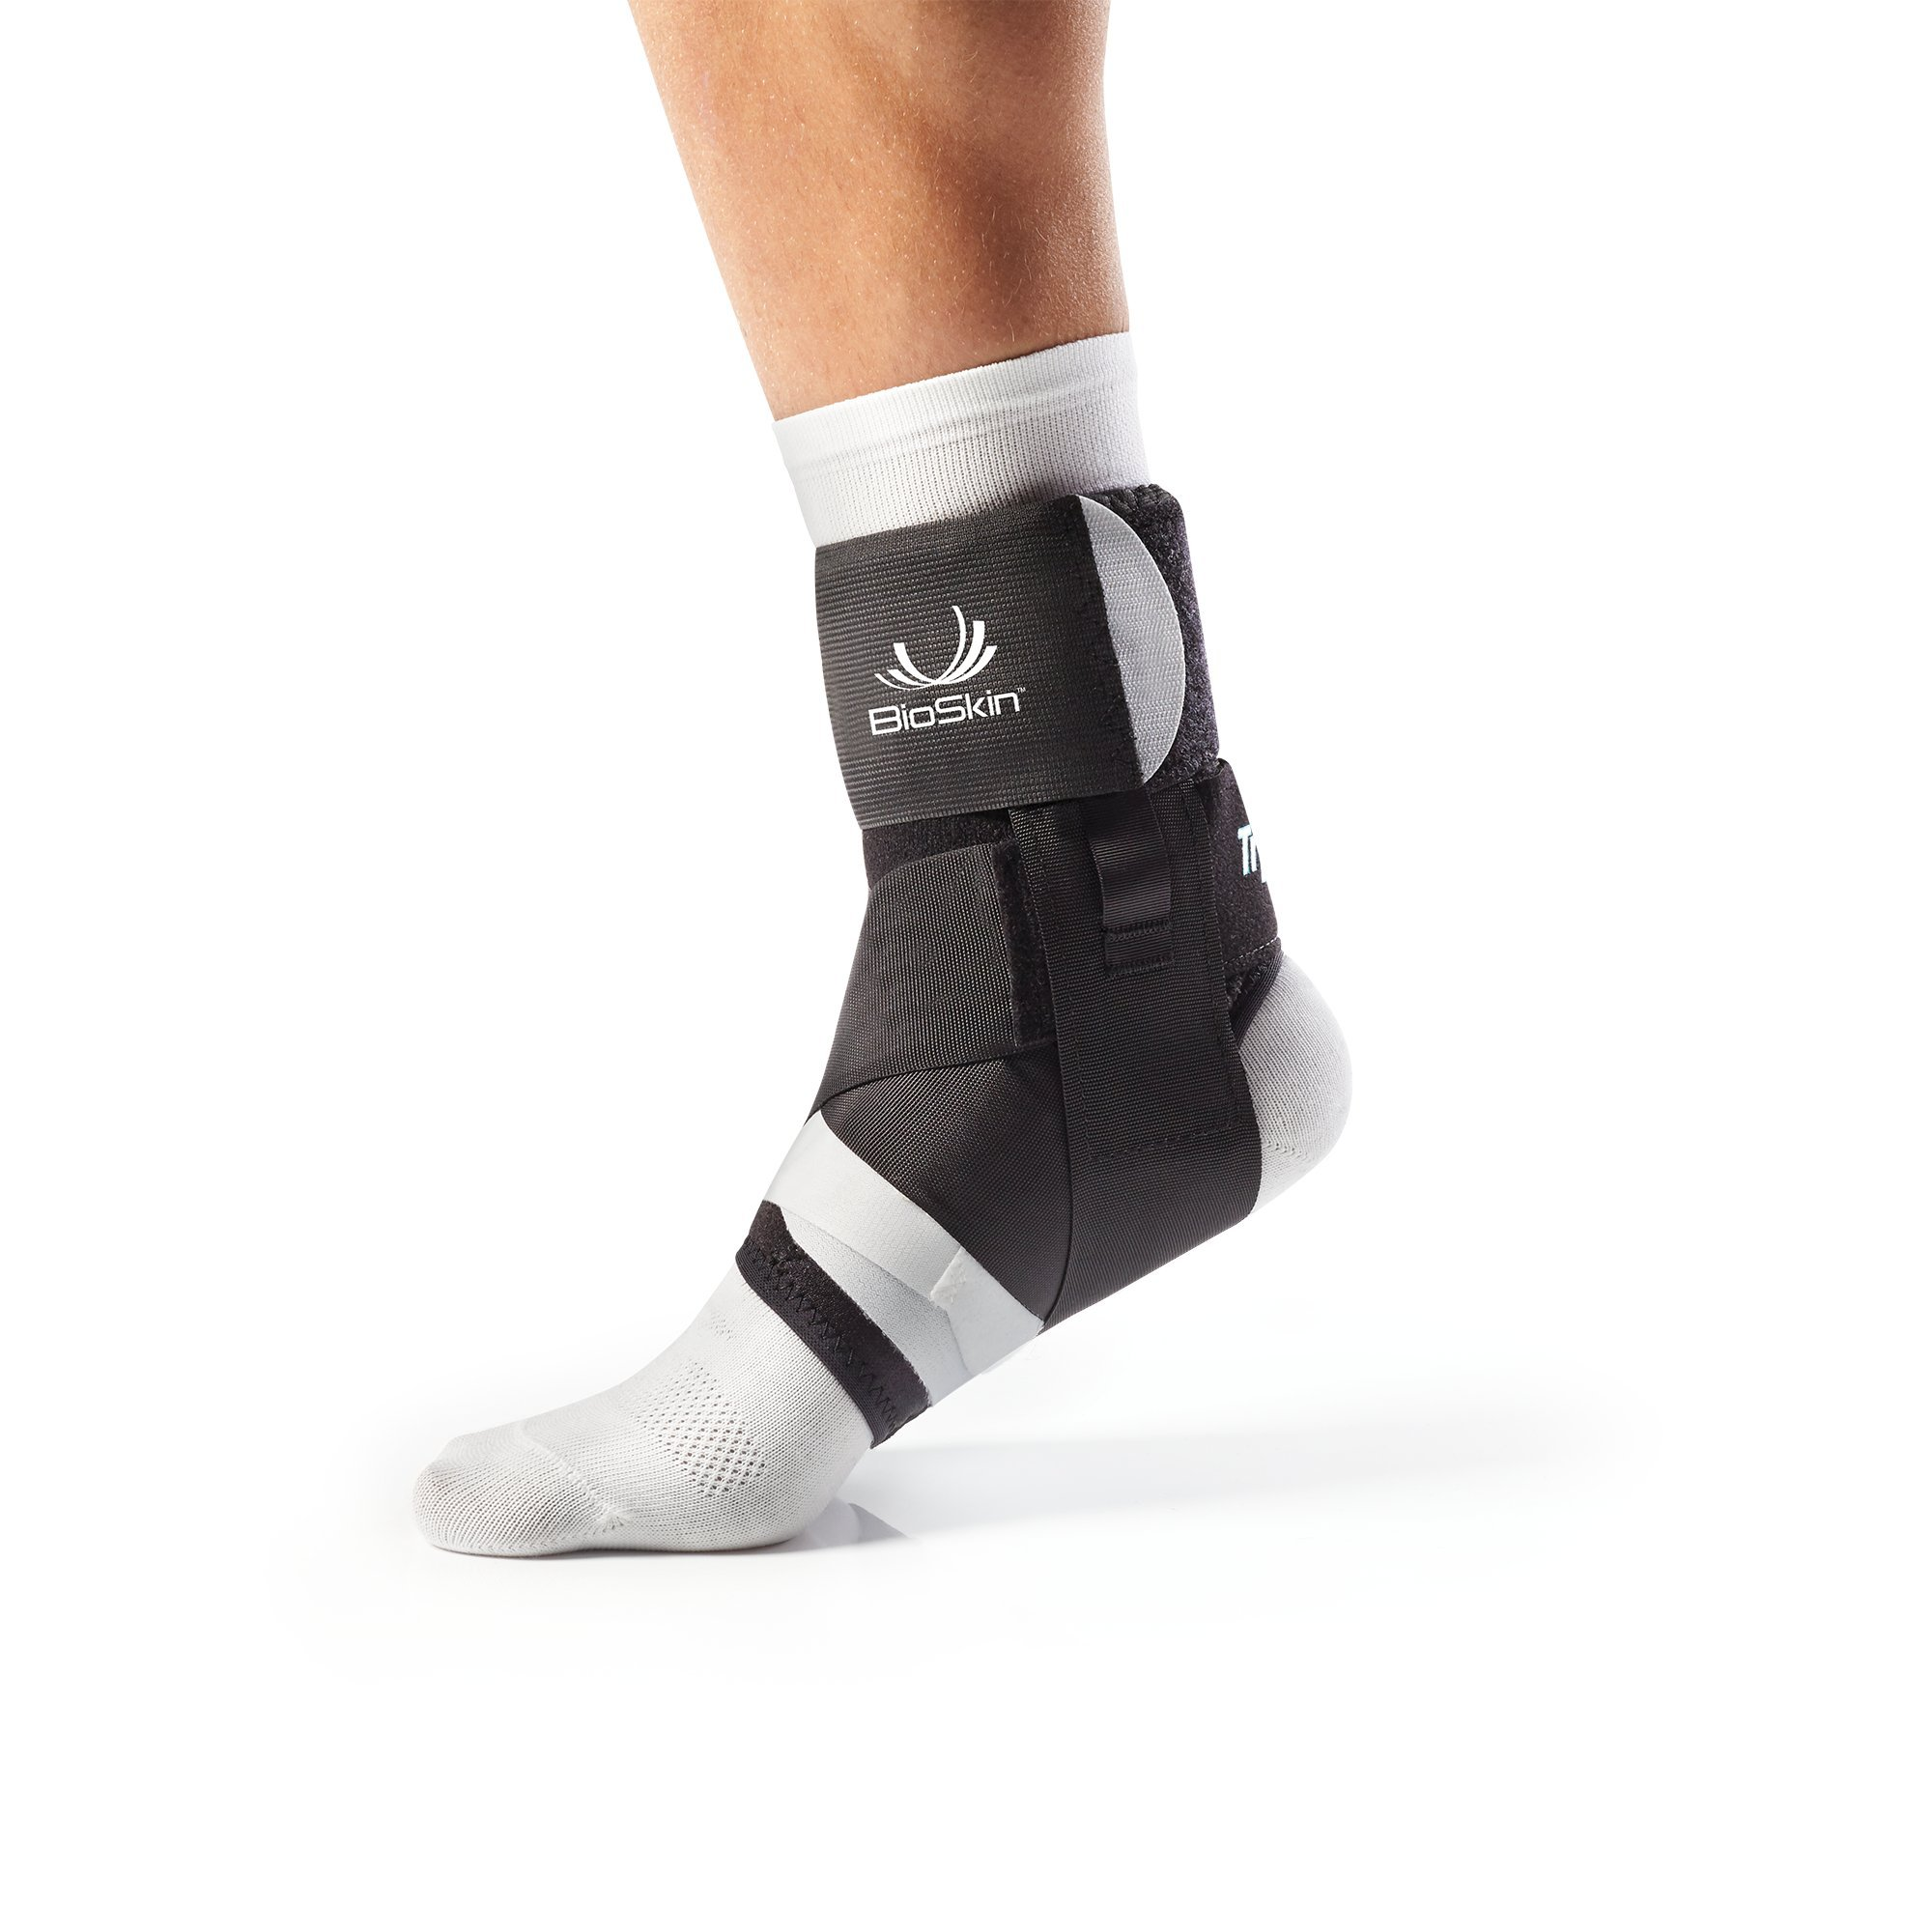 BioSkin Trilok Ankle Brace - Foot and Ankle Support for Ankle Sprains, Plantar Fasciitis, PTTD, Tendonitis and Active Ankle Stability - Lightweight, Hypo-Allergenic (XSmall)